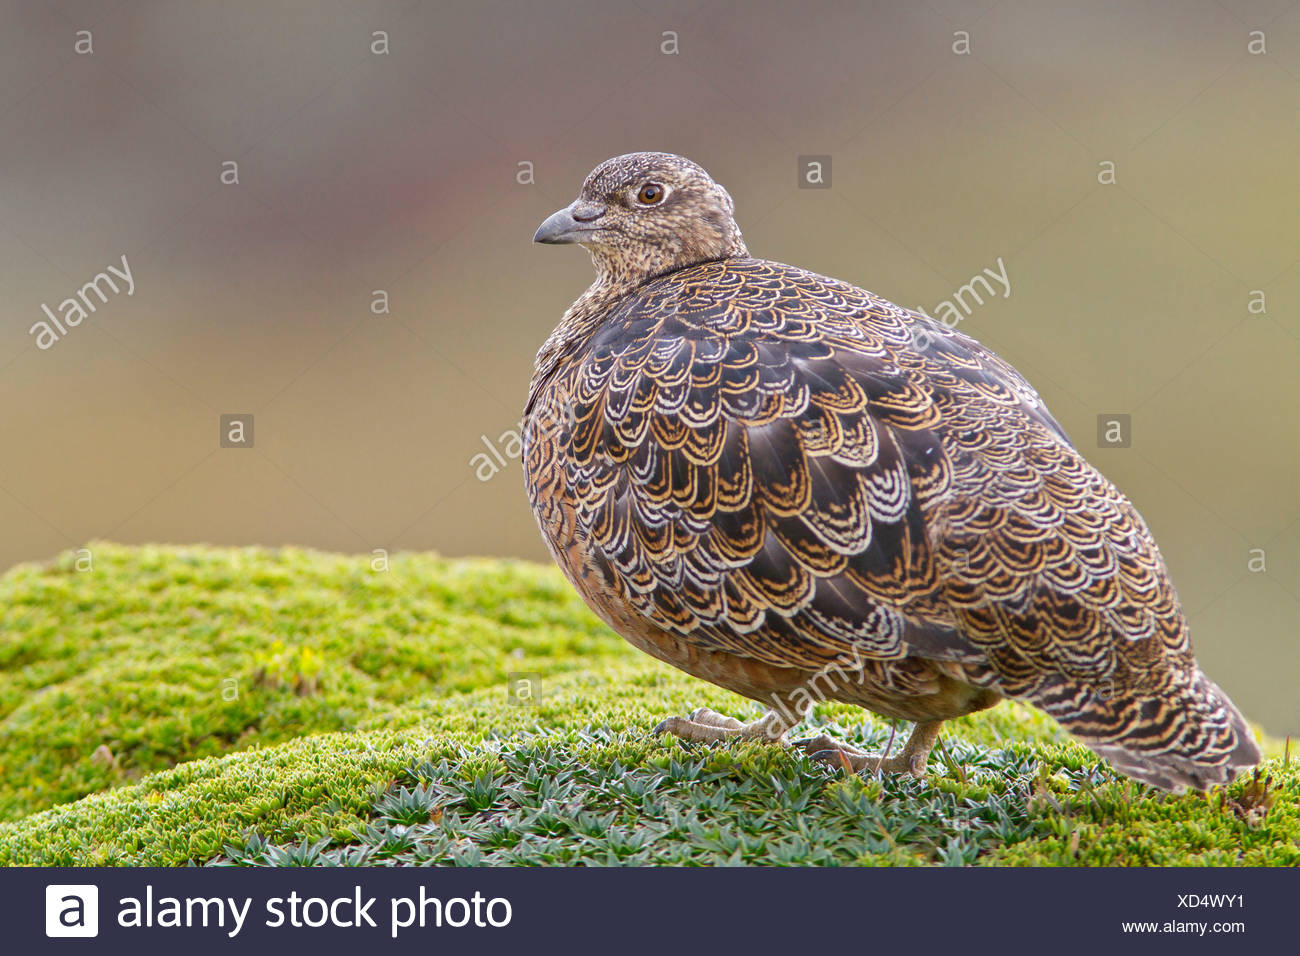 Rufous-bellied Seedsnipe (Attagis gayi) feeding on seeds in the highlands of Ecuador. - Stock Image